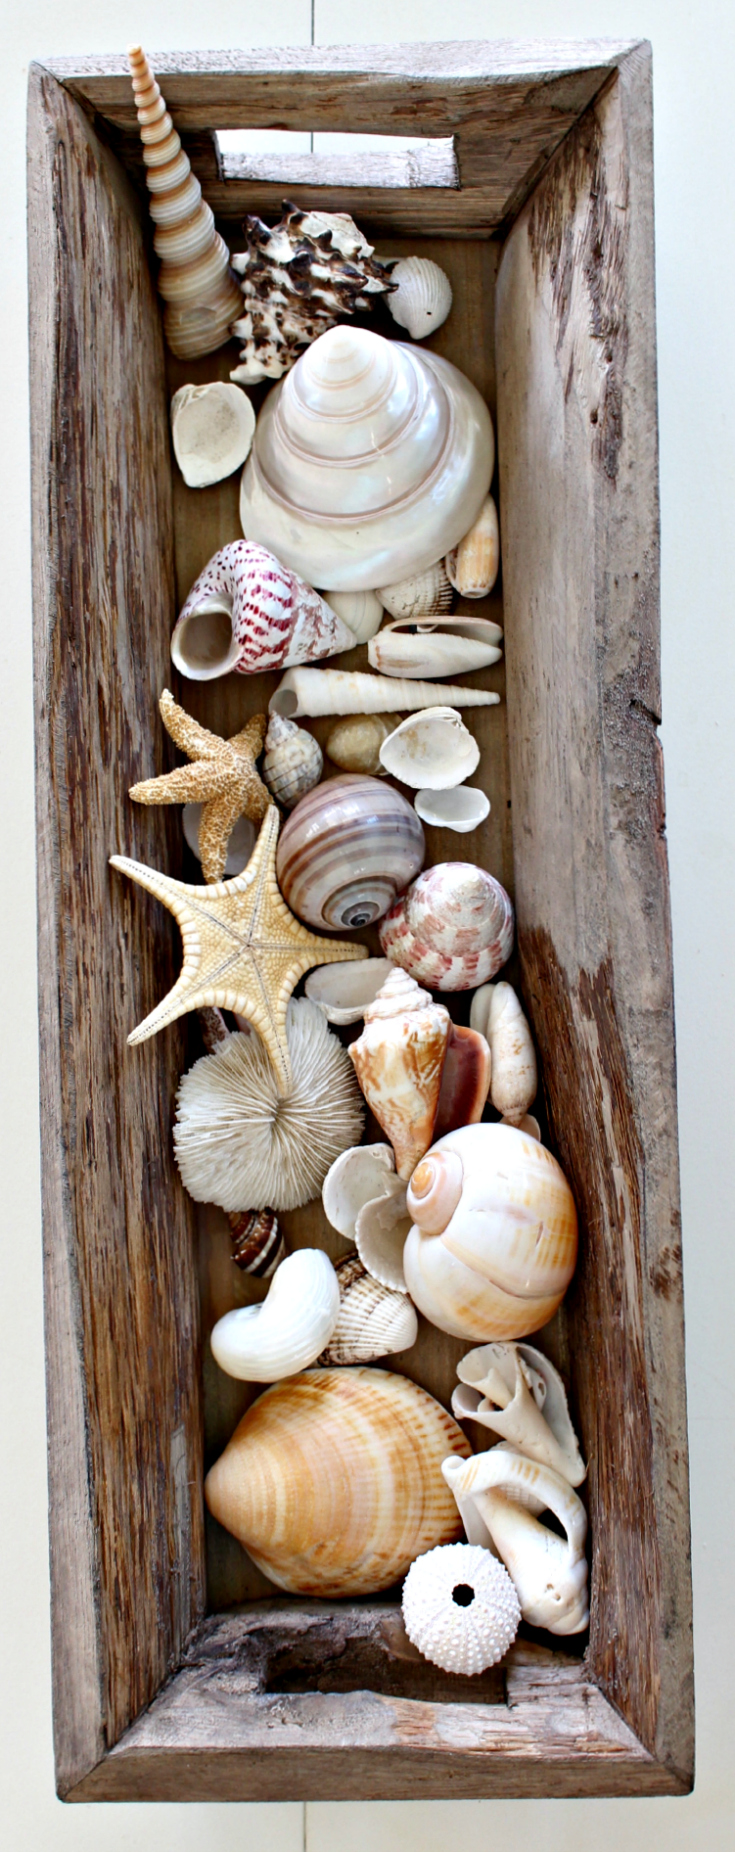 Seashells in Wooden Trough Coastal centerpiece